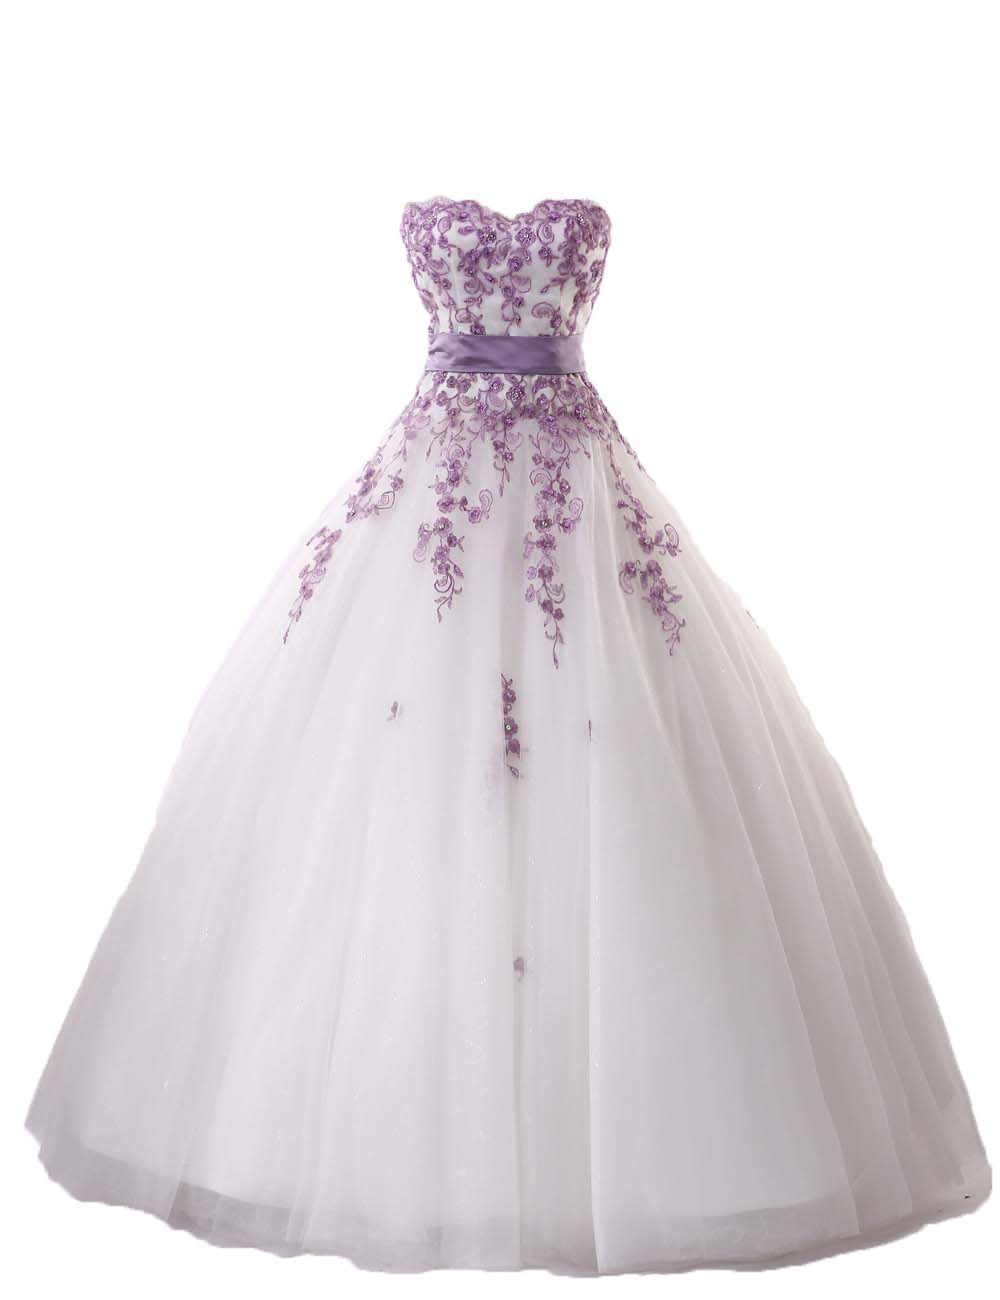 Lilac wedding dresses for sale bridesmaid dresses for Dresses for wedding bridesmaid